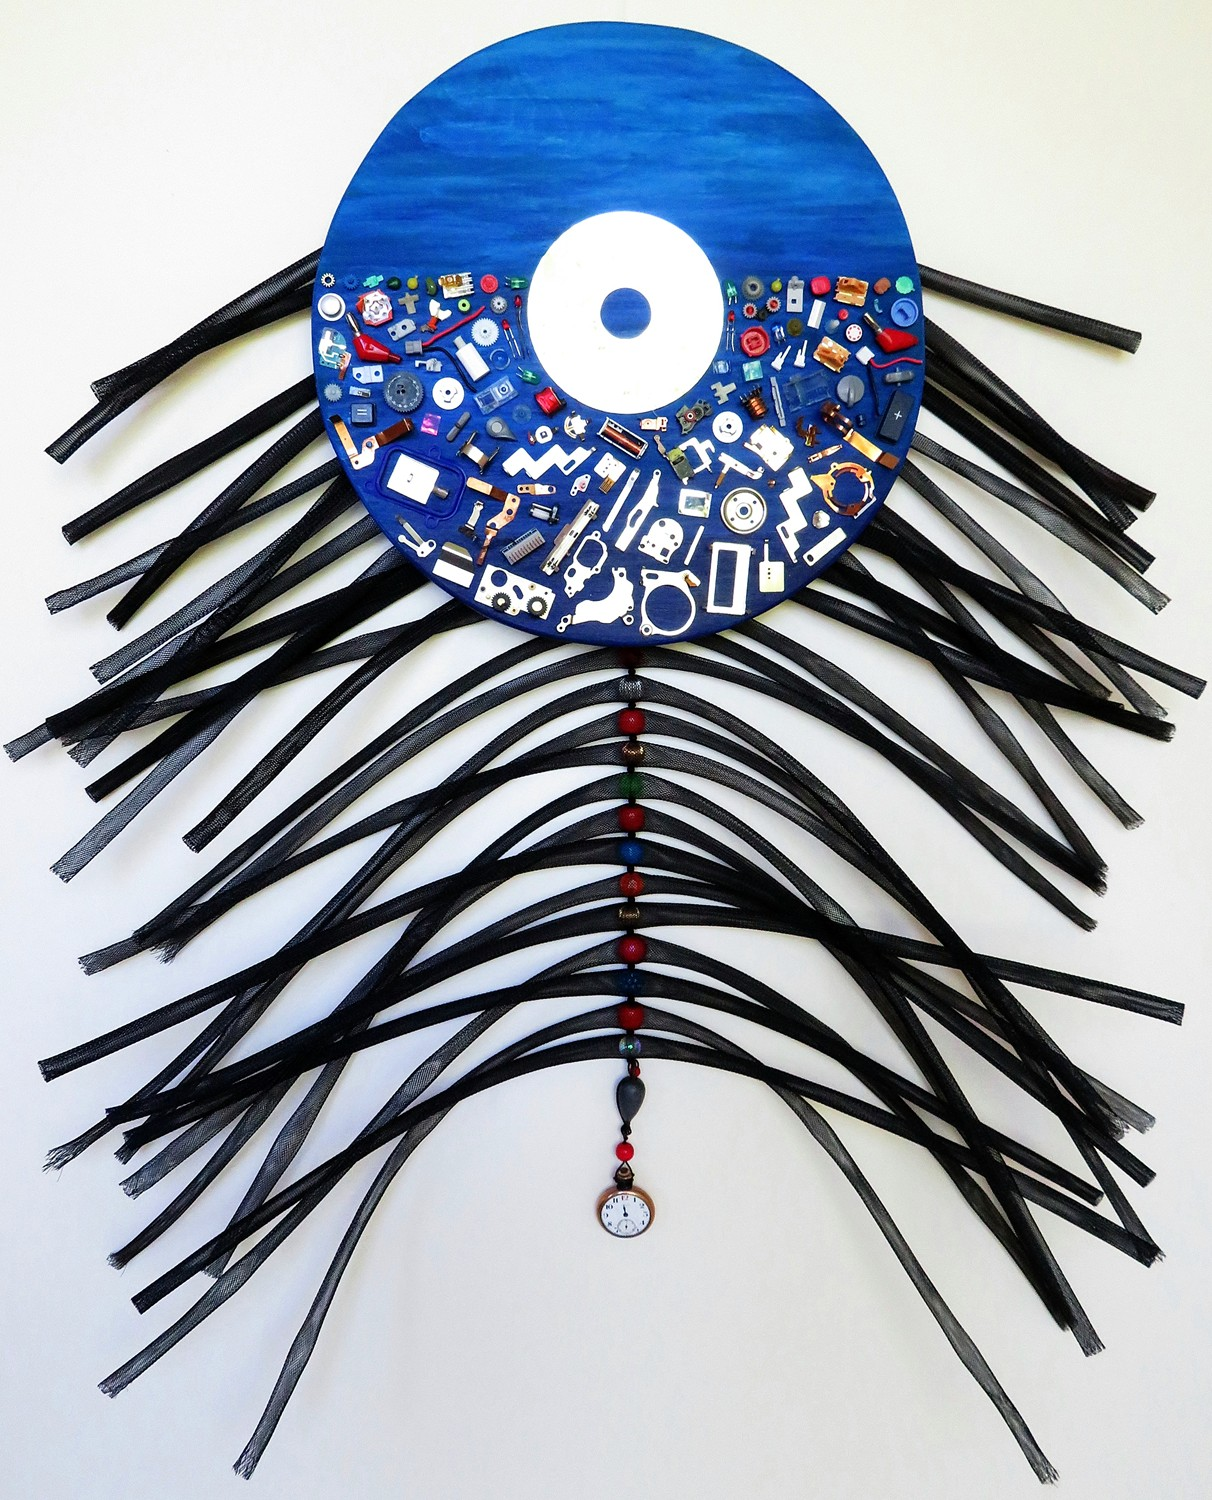 FLOTSAM 'N JETSAM  2019 ~ 24 x 29 x 5 inches ~ Available  Metal & plastic bits from dismantled electronics, hard-drive disc, beads, plastic braided cable sleeving, watch, lead sinker, cable wire, sequins, recycled wood, acrylic paint